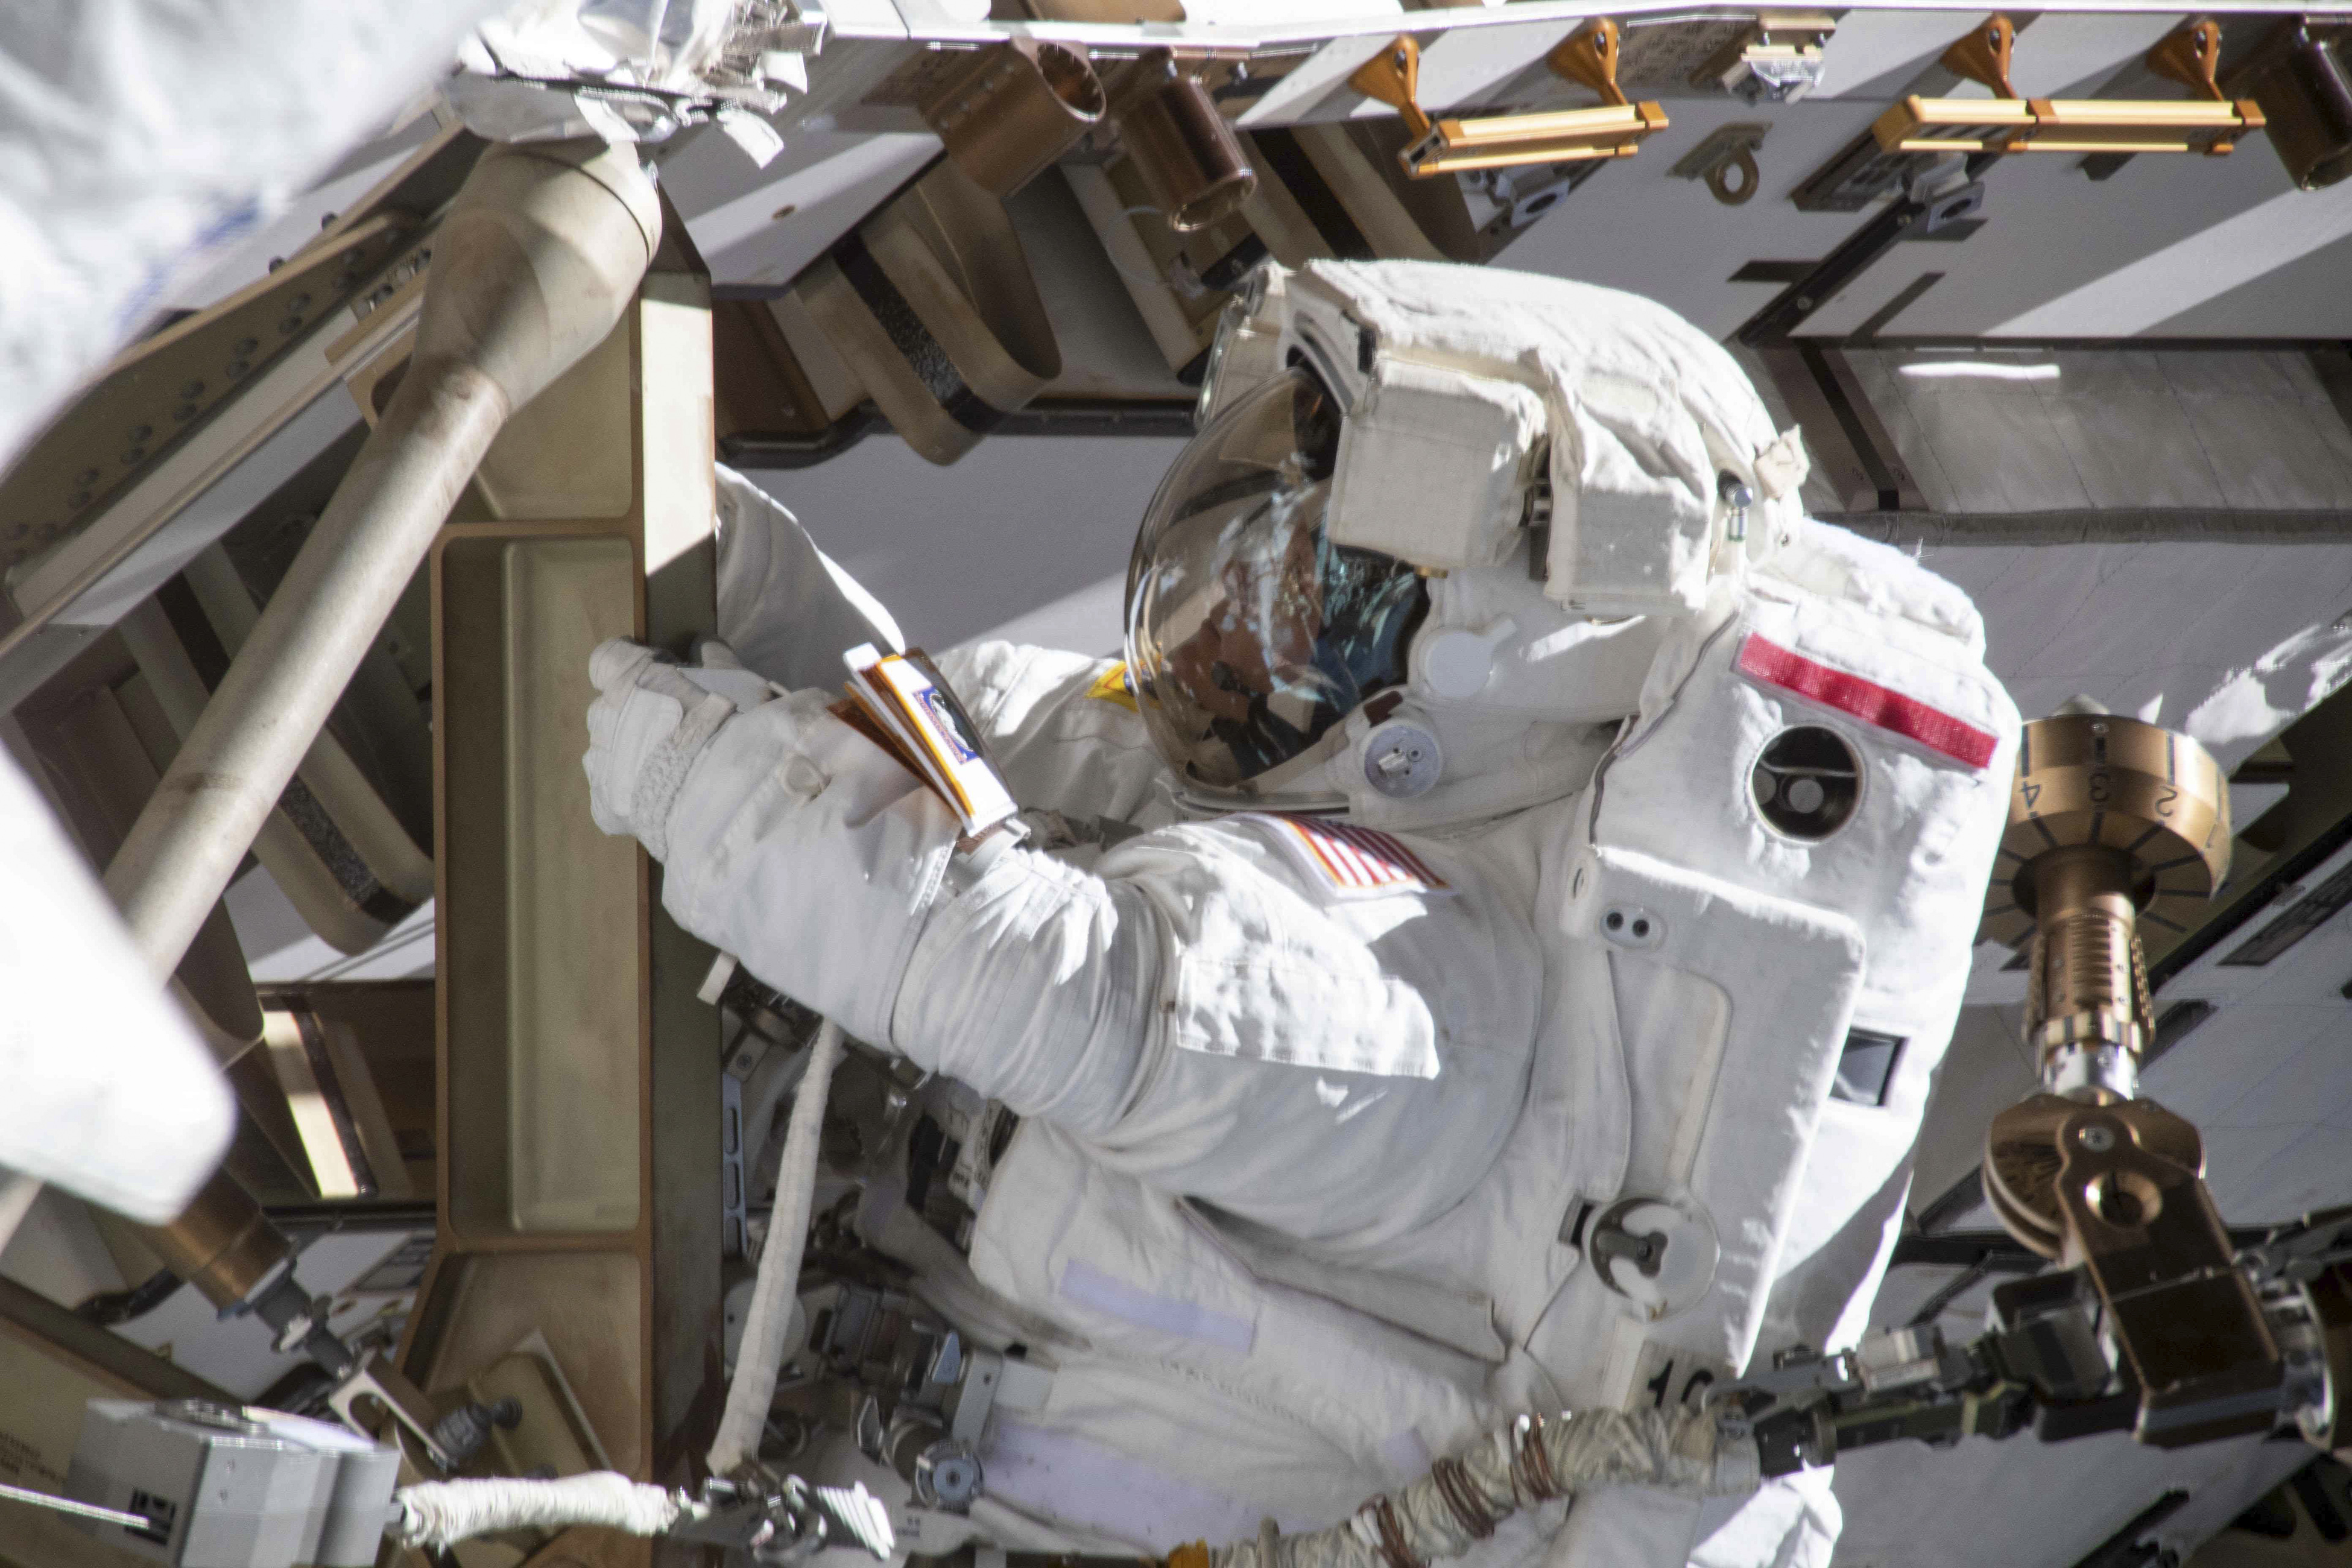 A photo provided by NASA of Anne McClain working on the International Space Station's Port-4 truss structure during a 6-hour 39-minute spacewalk to upgrade the station's power storage capacity.